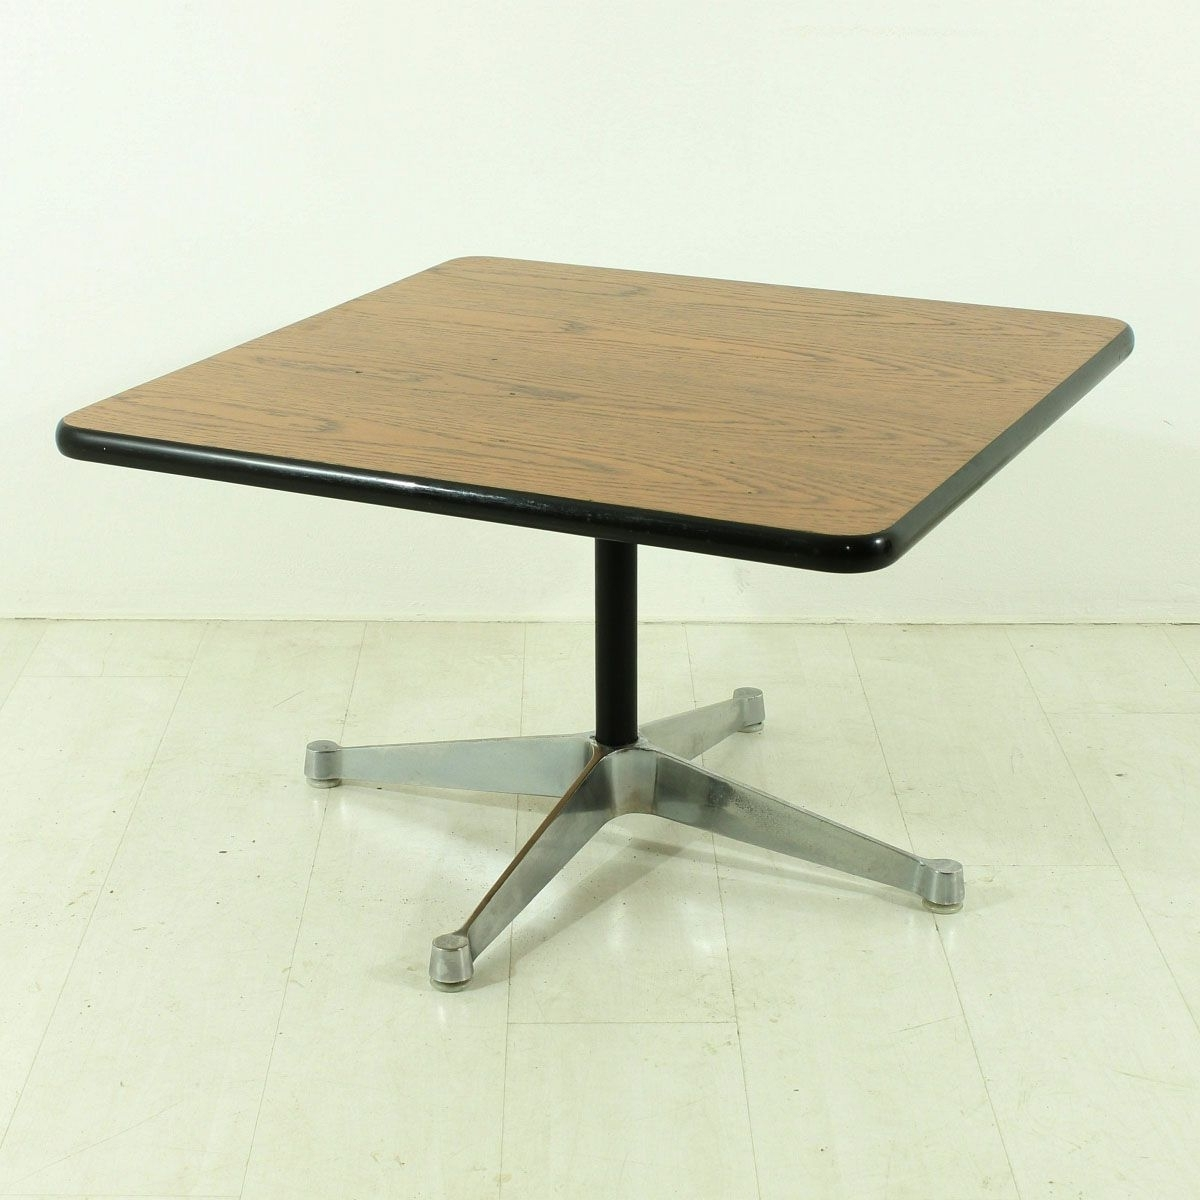 Vintage Four Star Base Coffee Tablecharles & Ray Eames For Vitra Intended For 2018 Expressionist Coffee Tables (View 9 of 20)